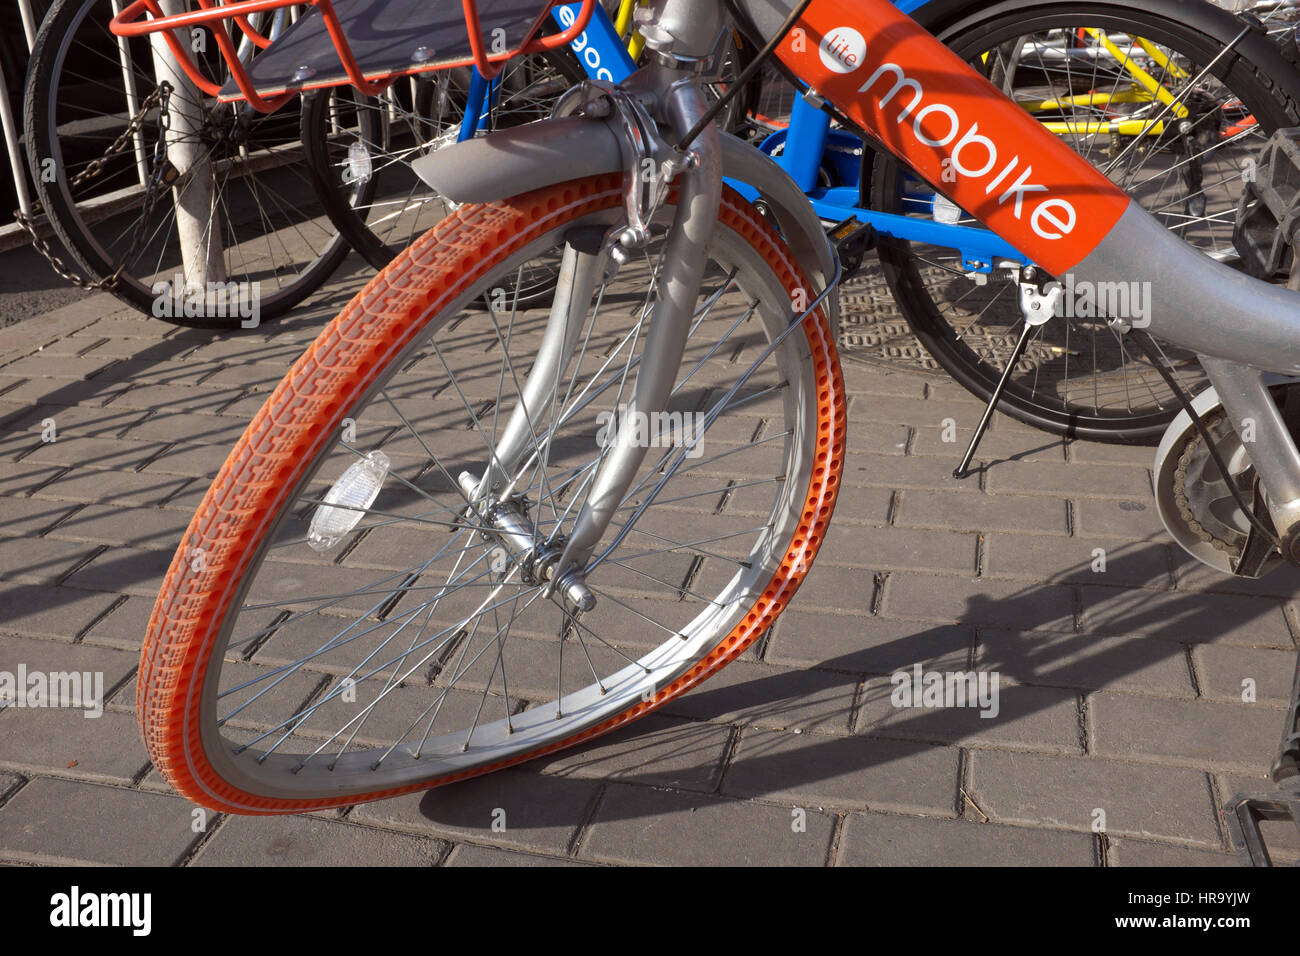 A bike-sharing bicycle is ruined in Beijing, China. 28-Feb-2017 - Stock Image